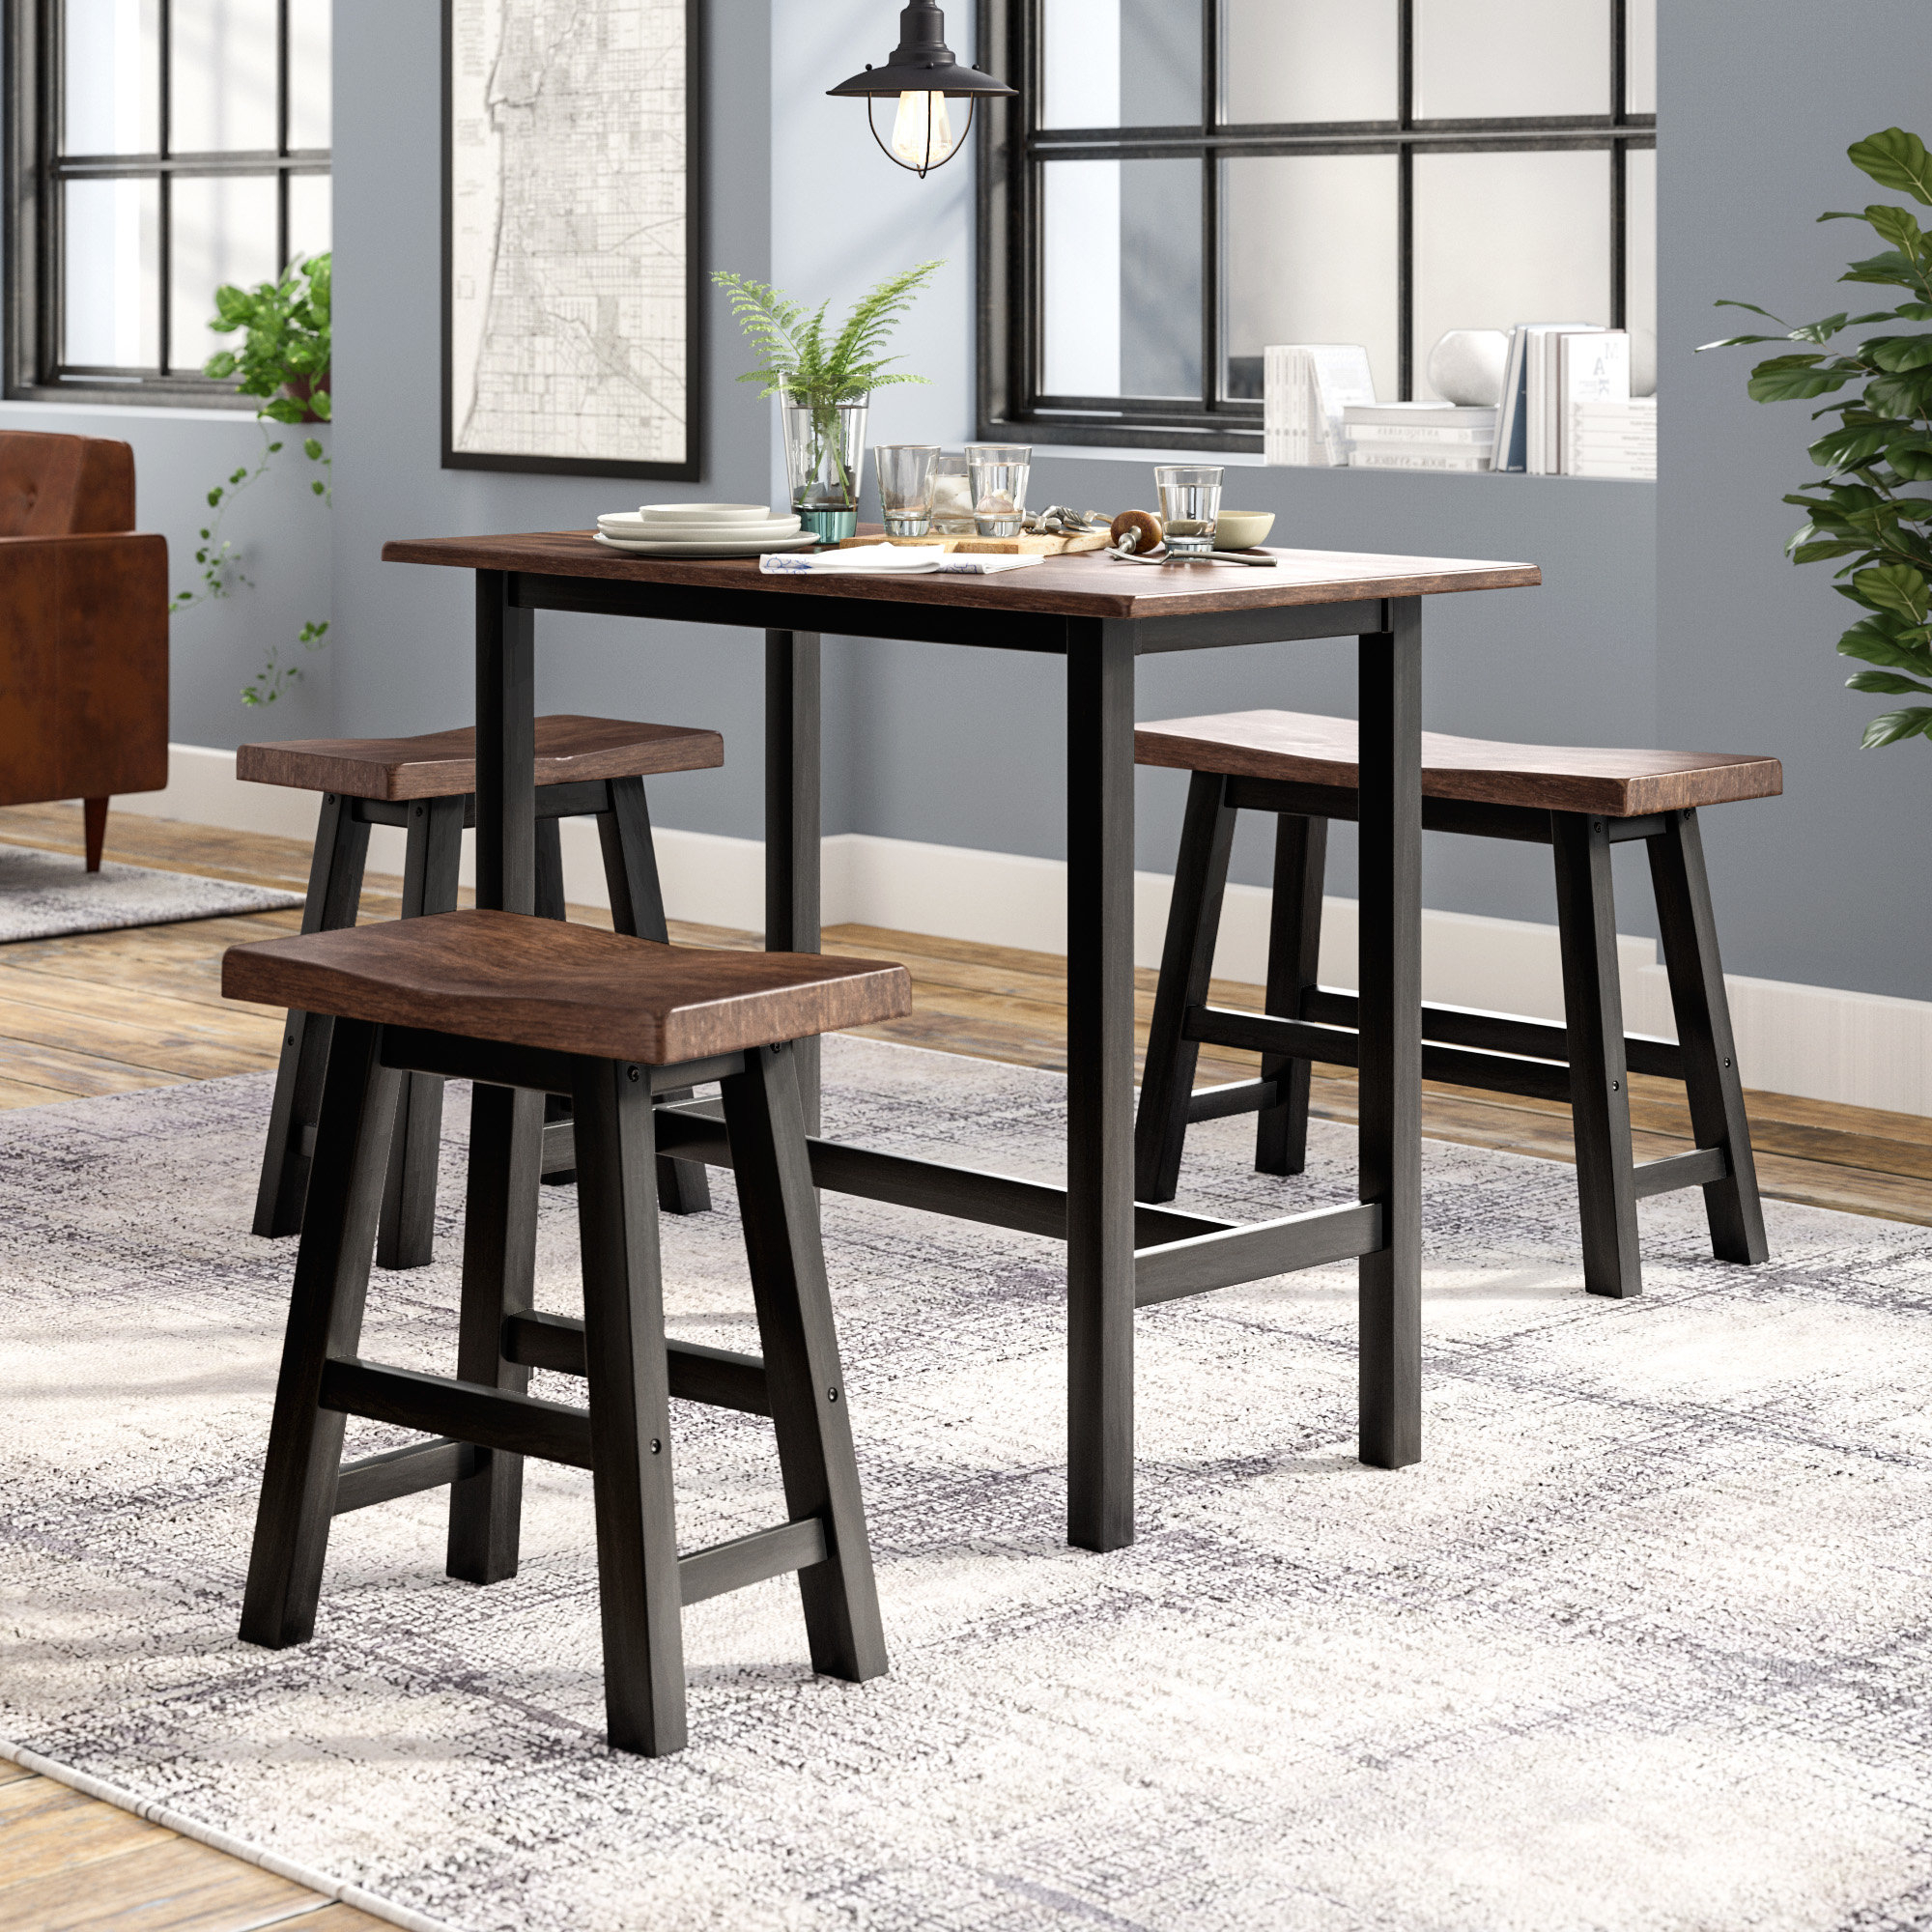 Wayfair Regarding 2020 Winsted 4 Piece Counter Height Dining Sets (View 19 of 25)